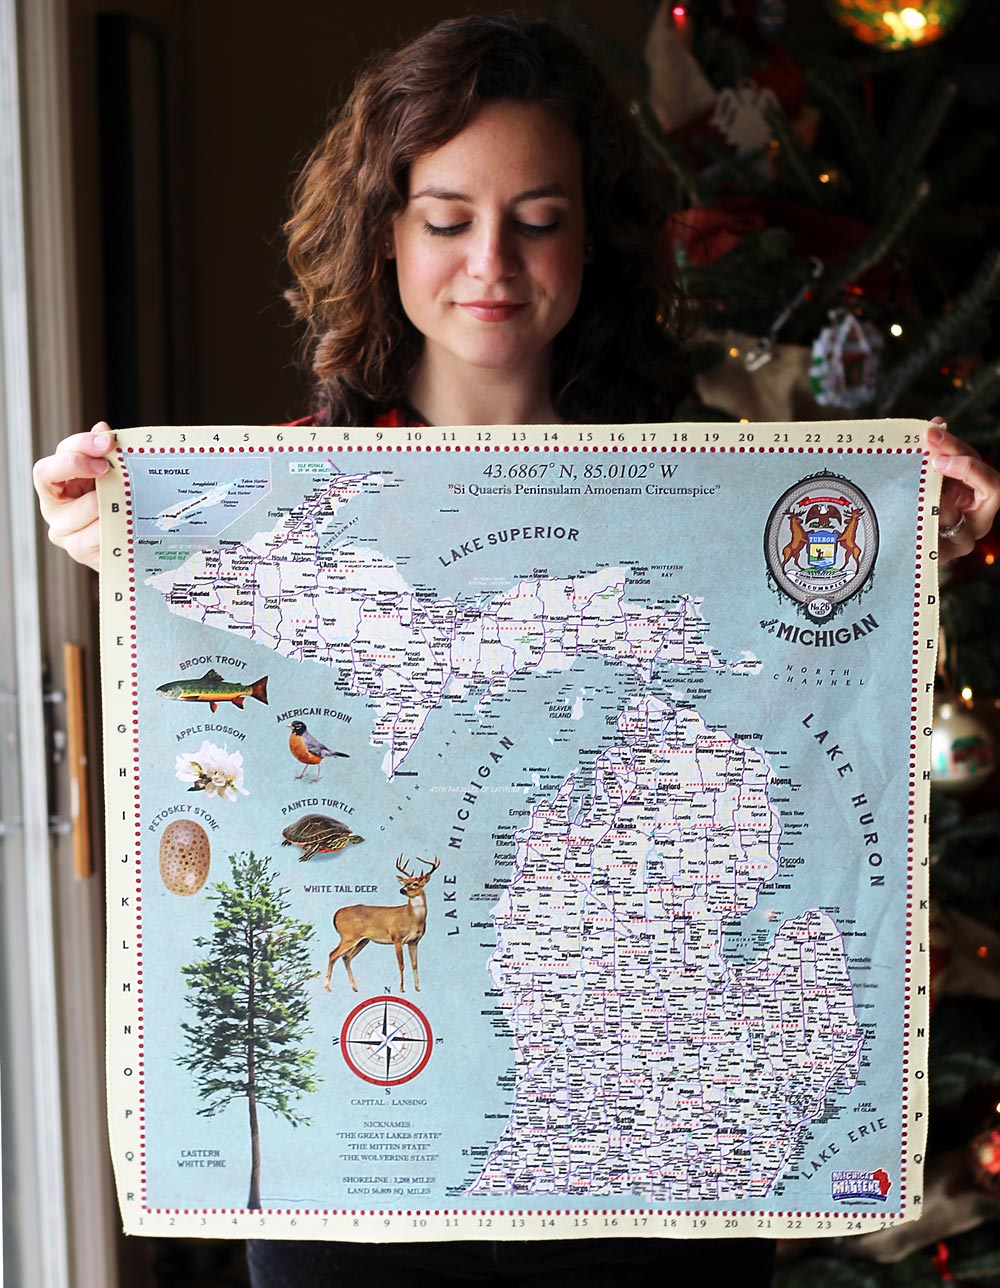 """Wear This Map"" Bandana from Michigan Mittens // 4 Fun Gift Ideas From Michigan Mittens  (via Wading in Big Shoes)"